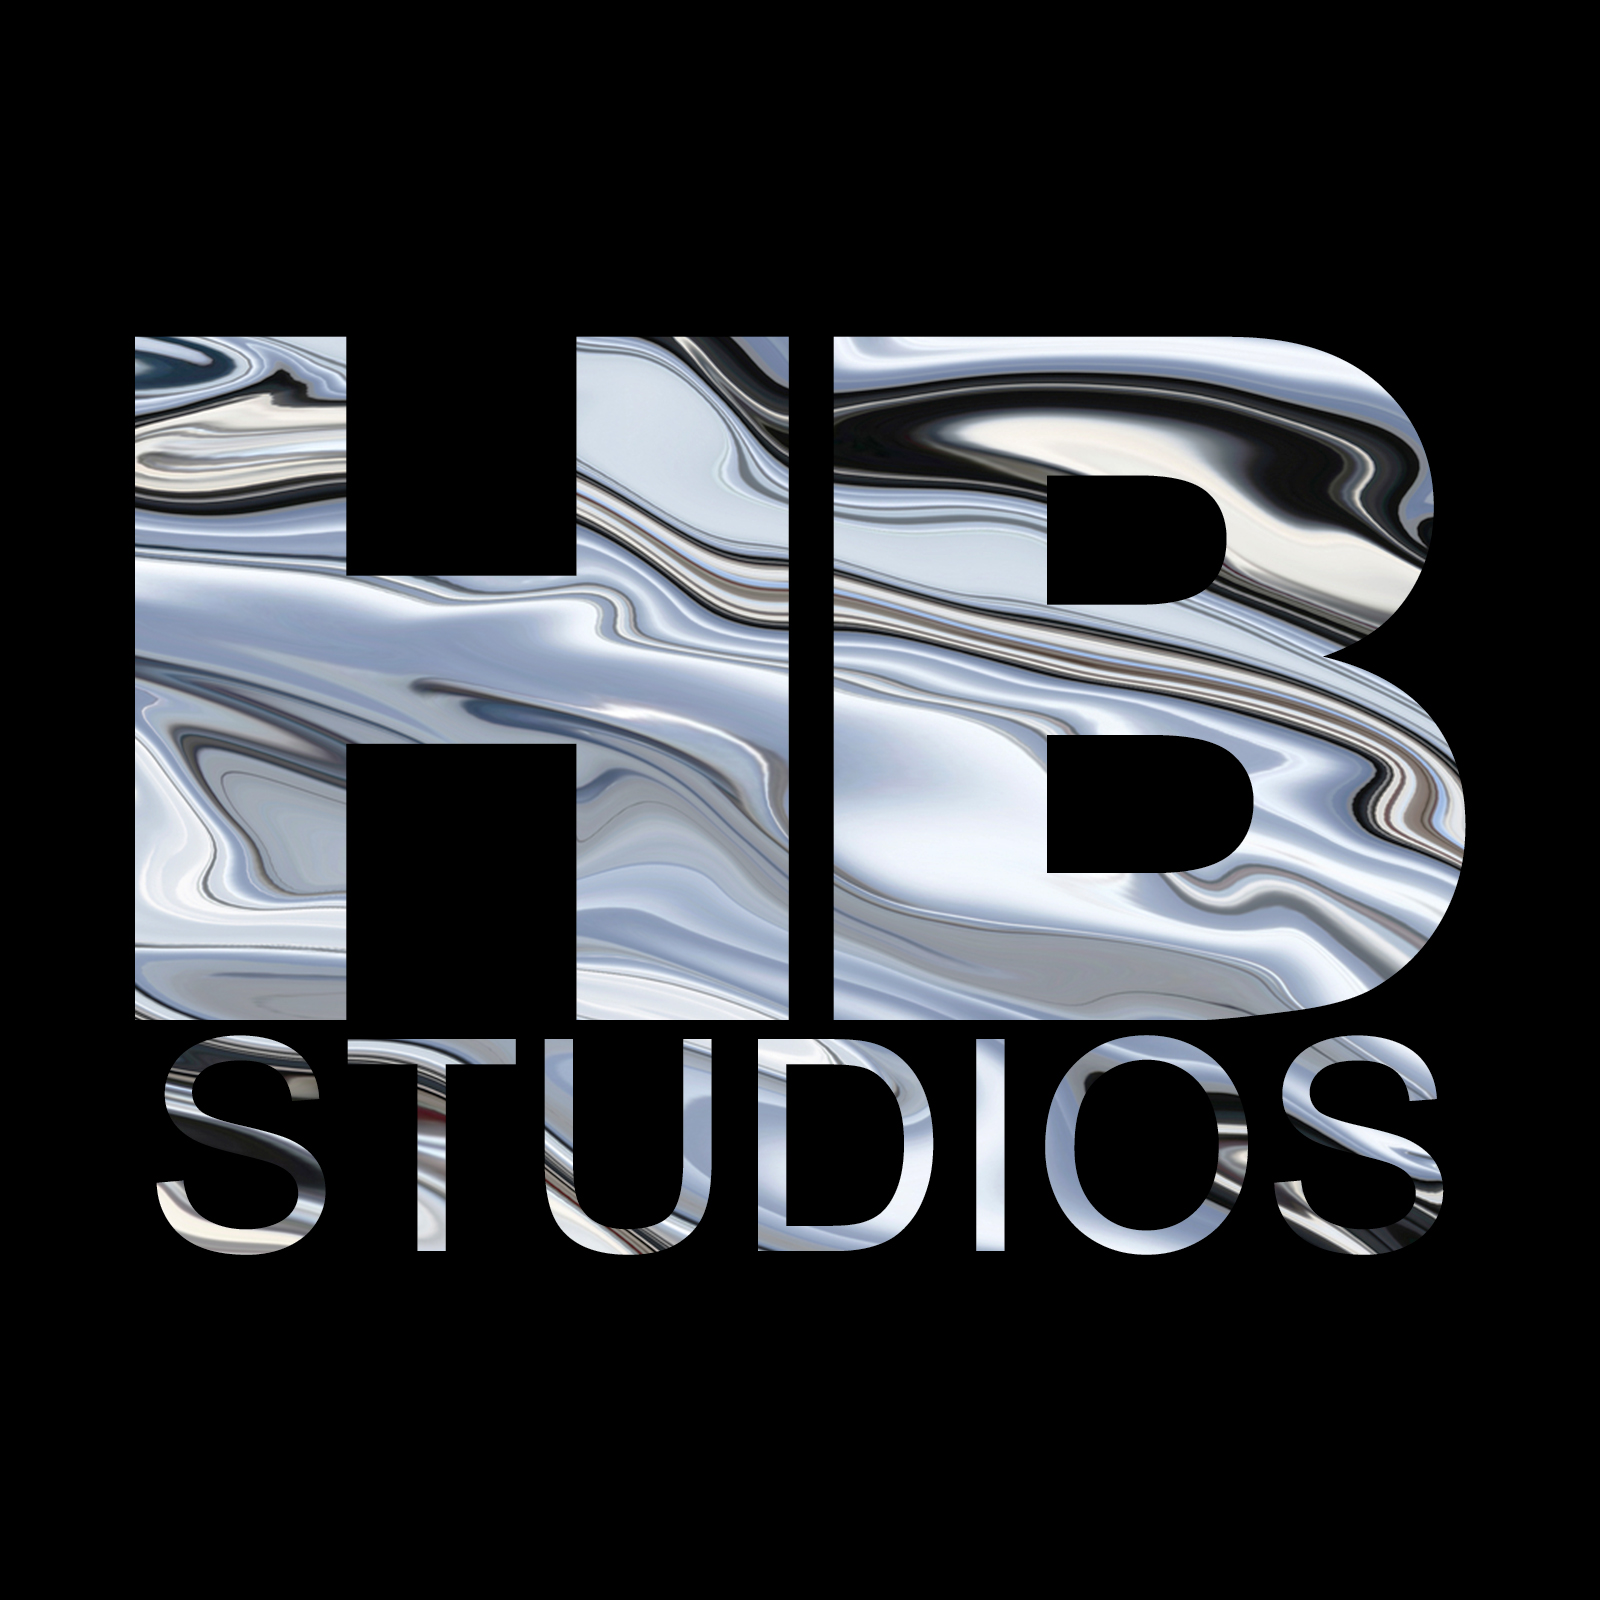 huntington_bay_studios_newlogo.jpg